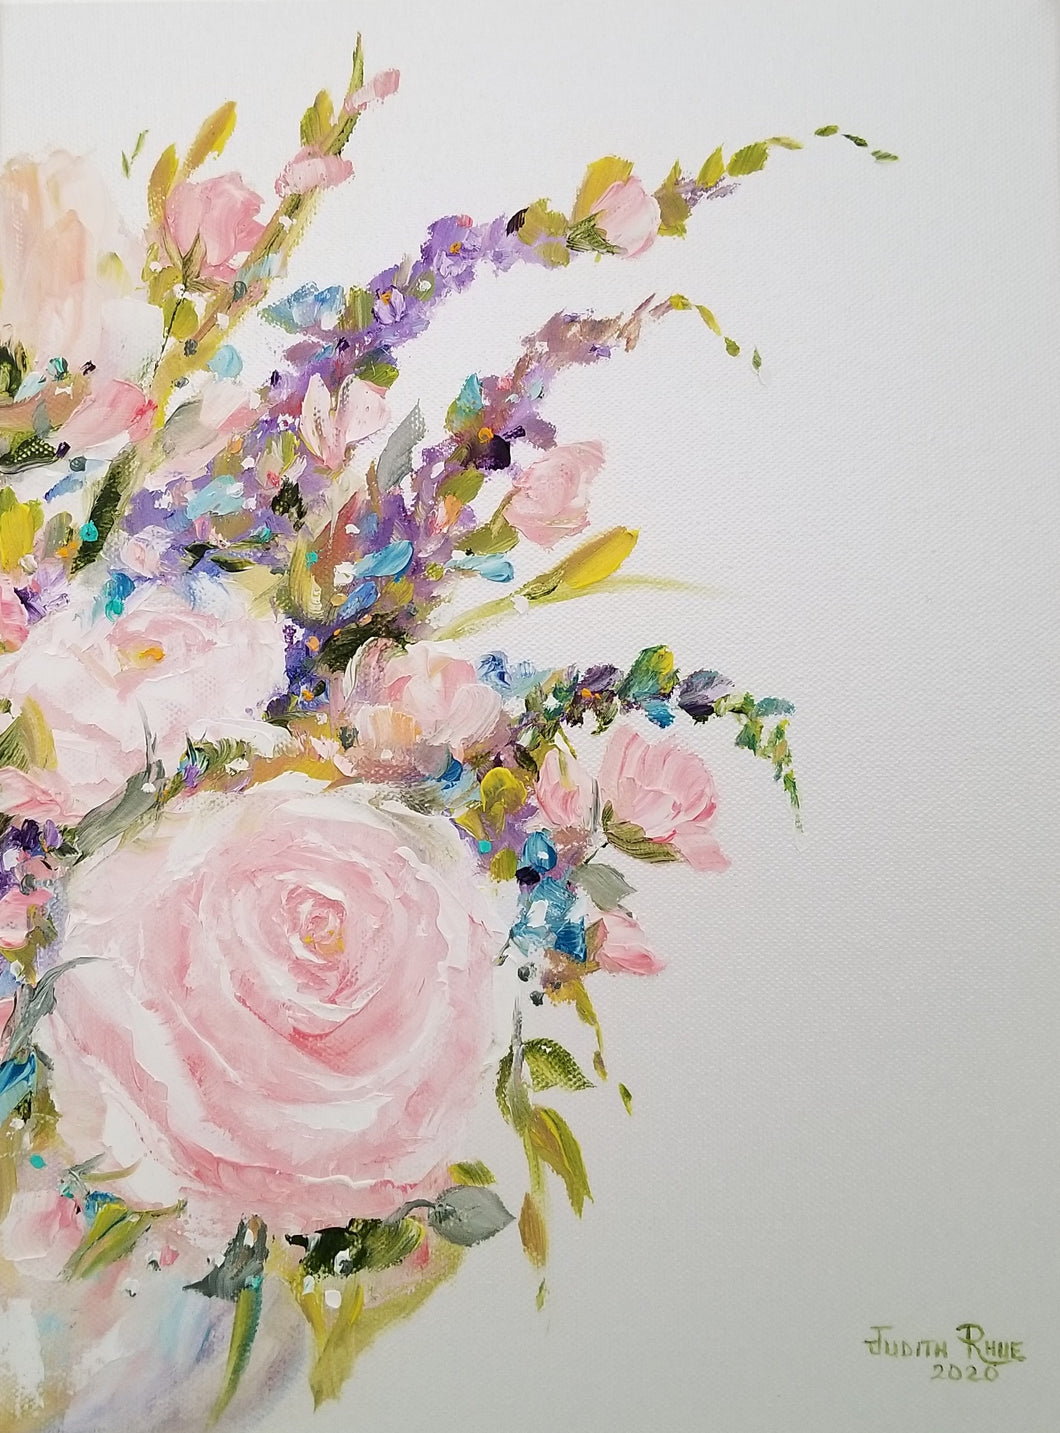 April's Pearls (right) - original oil painting, flowers, pink, roses, still life, nature, oil painting, on canvas, wall art, home, decor, wedding, gift, garden, art